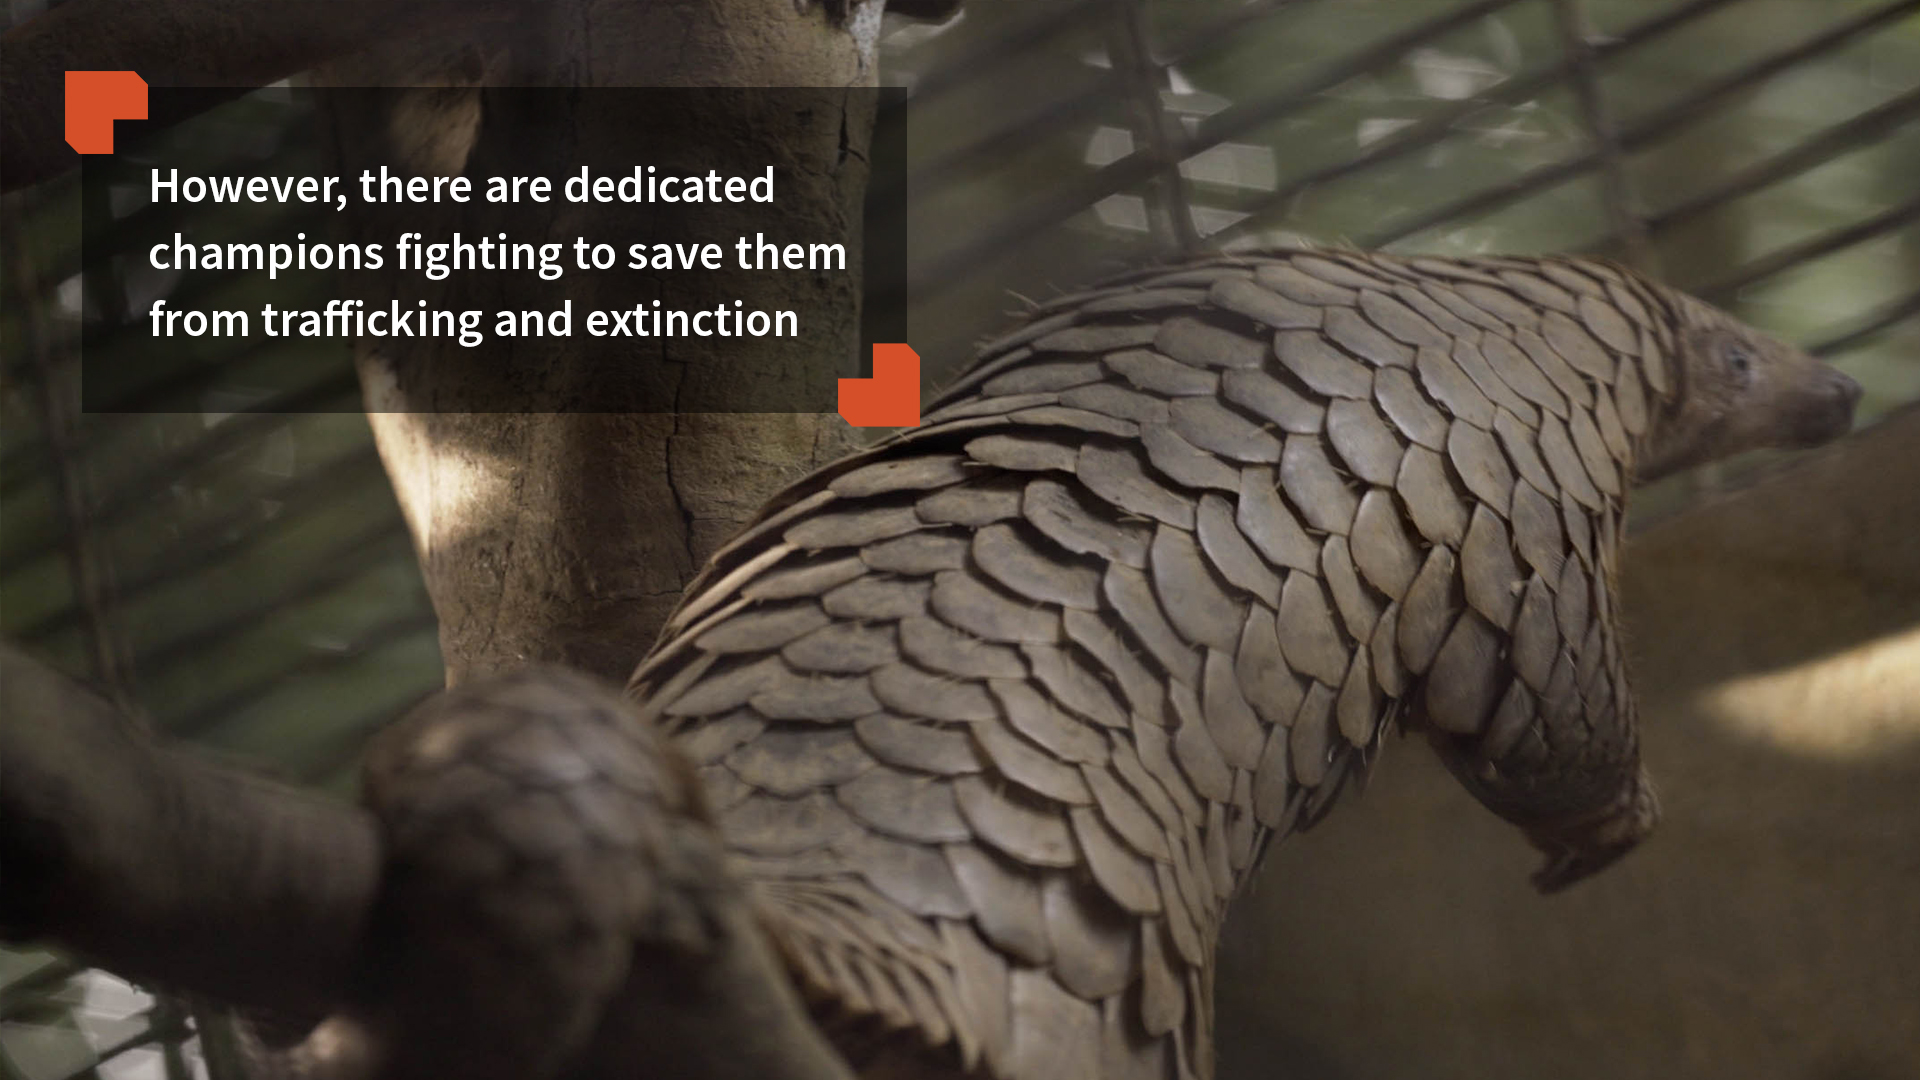 However, there are dedicated champions fighting to save them from trafficking and extinction